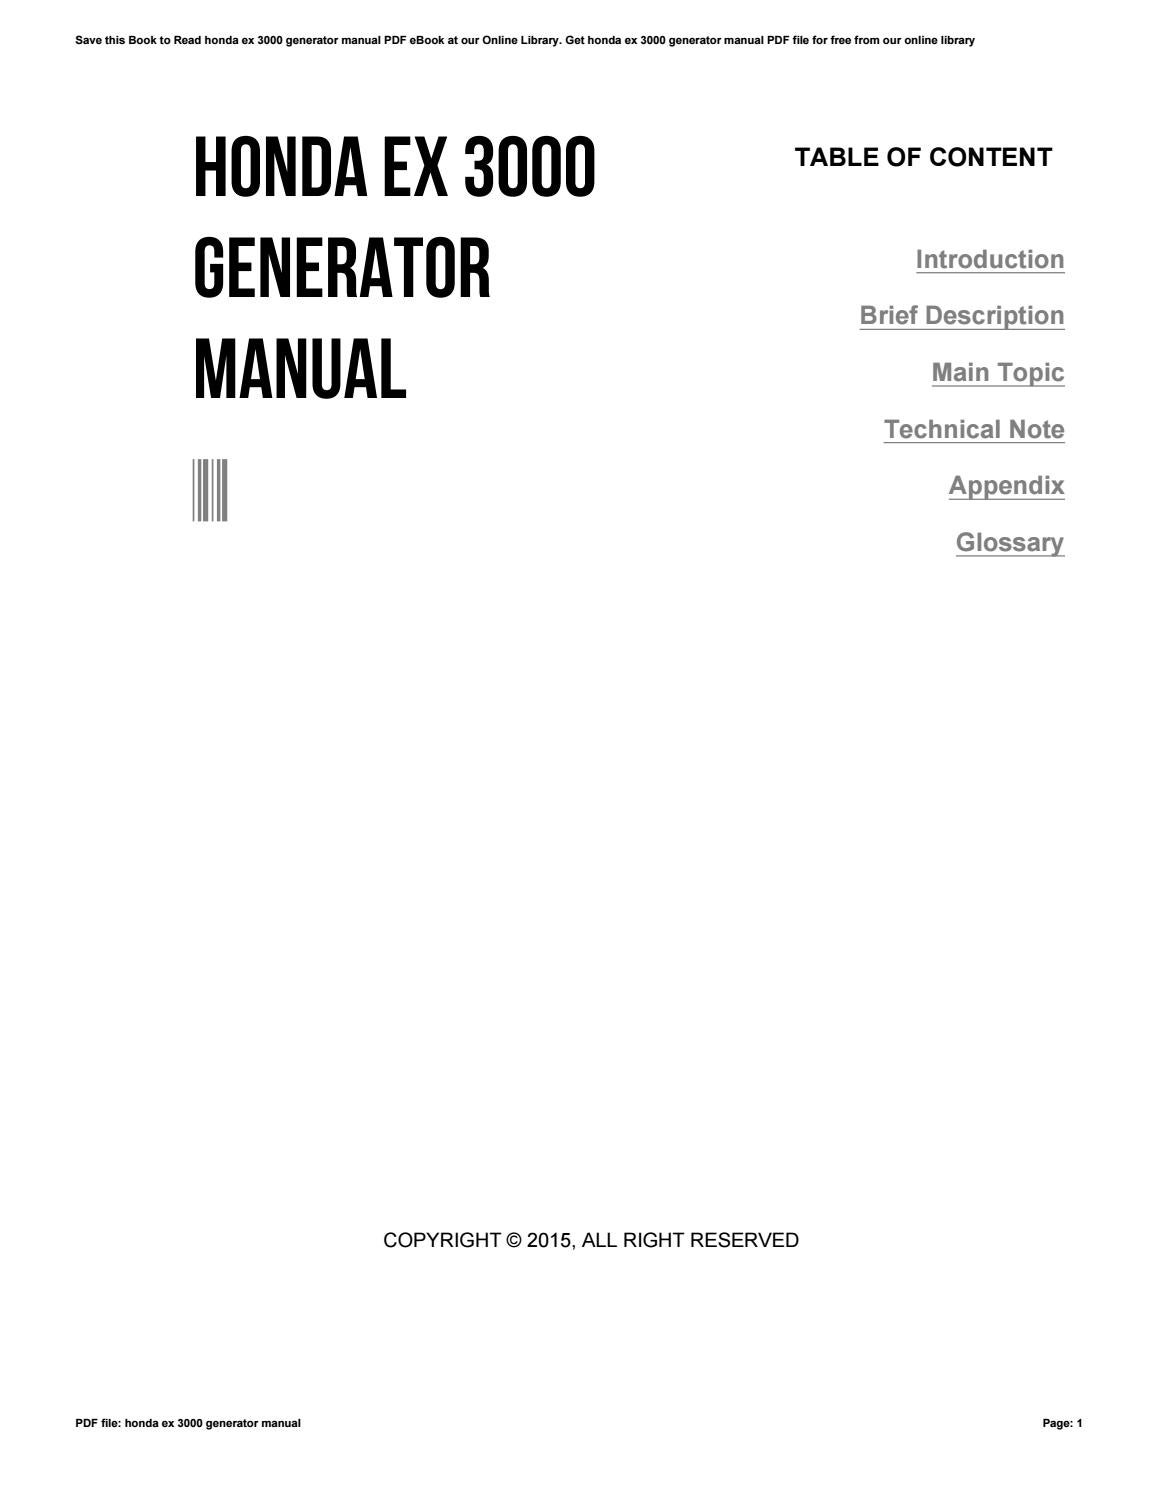 honda ex 3000 generator manual by te71 issuu